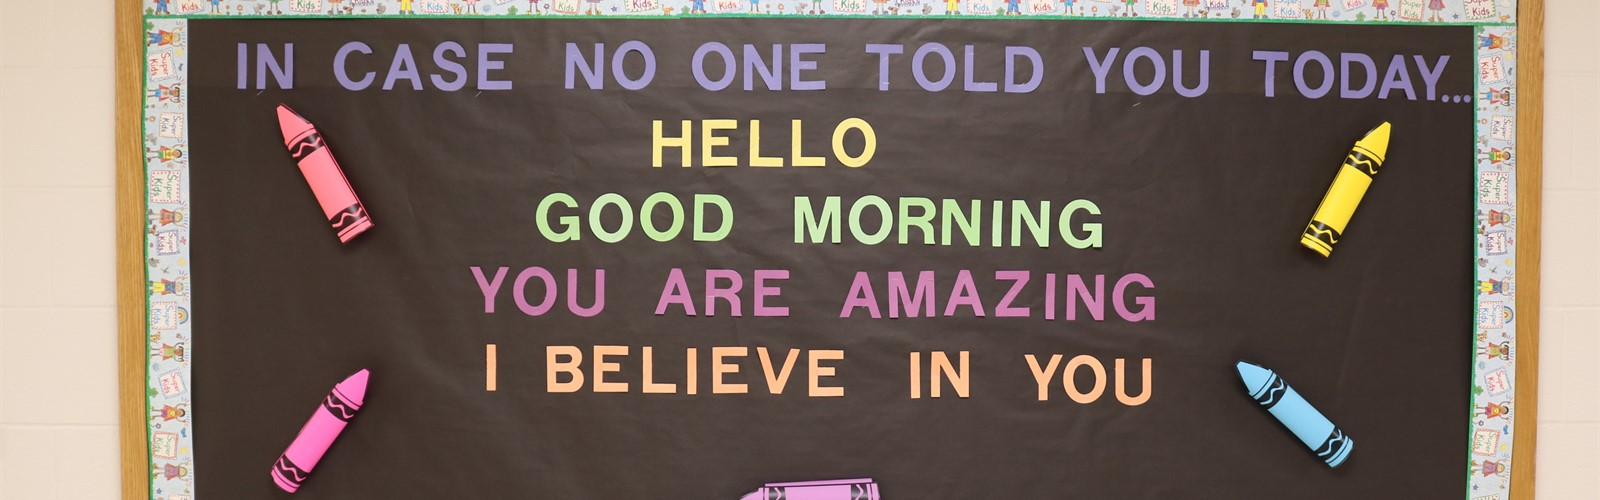 Bulletin Board: In case no one told you today: hello, good morning, you are amazing, I believe in you